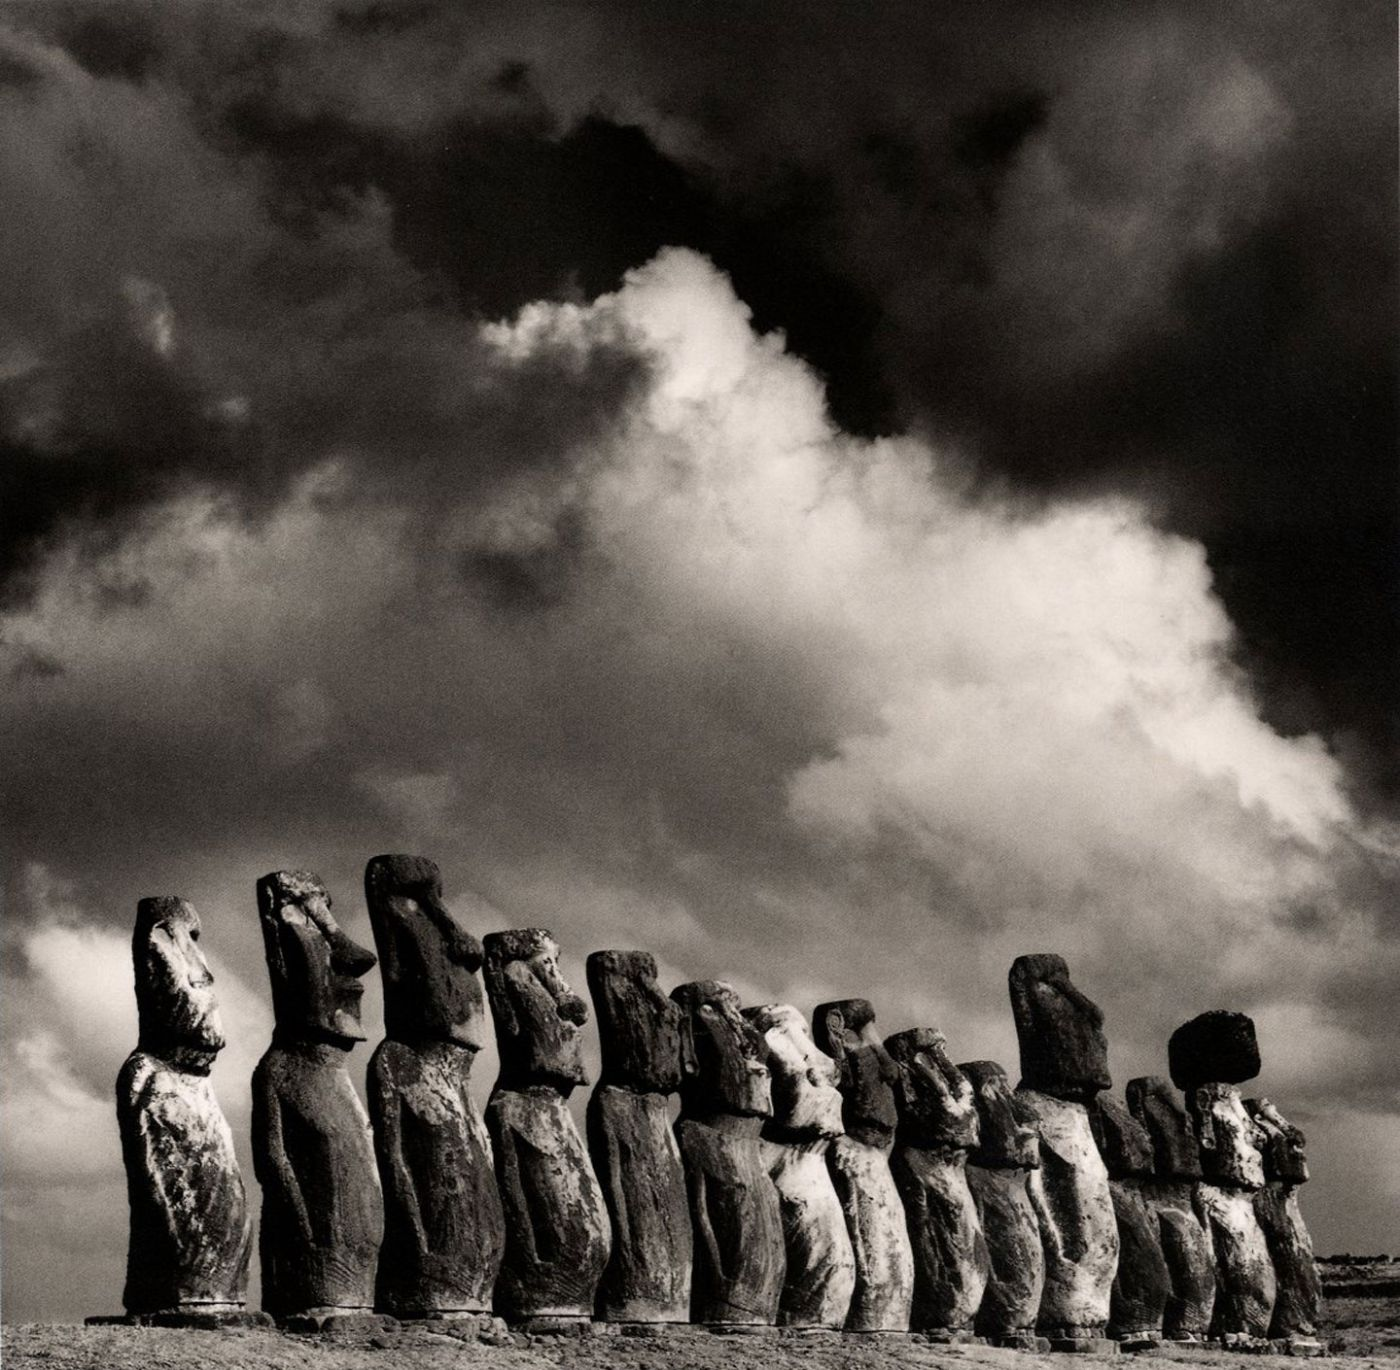 Michael Kenna: Easter Island, Slipcased Limited Edition [SIGNED]